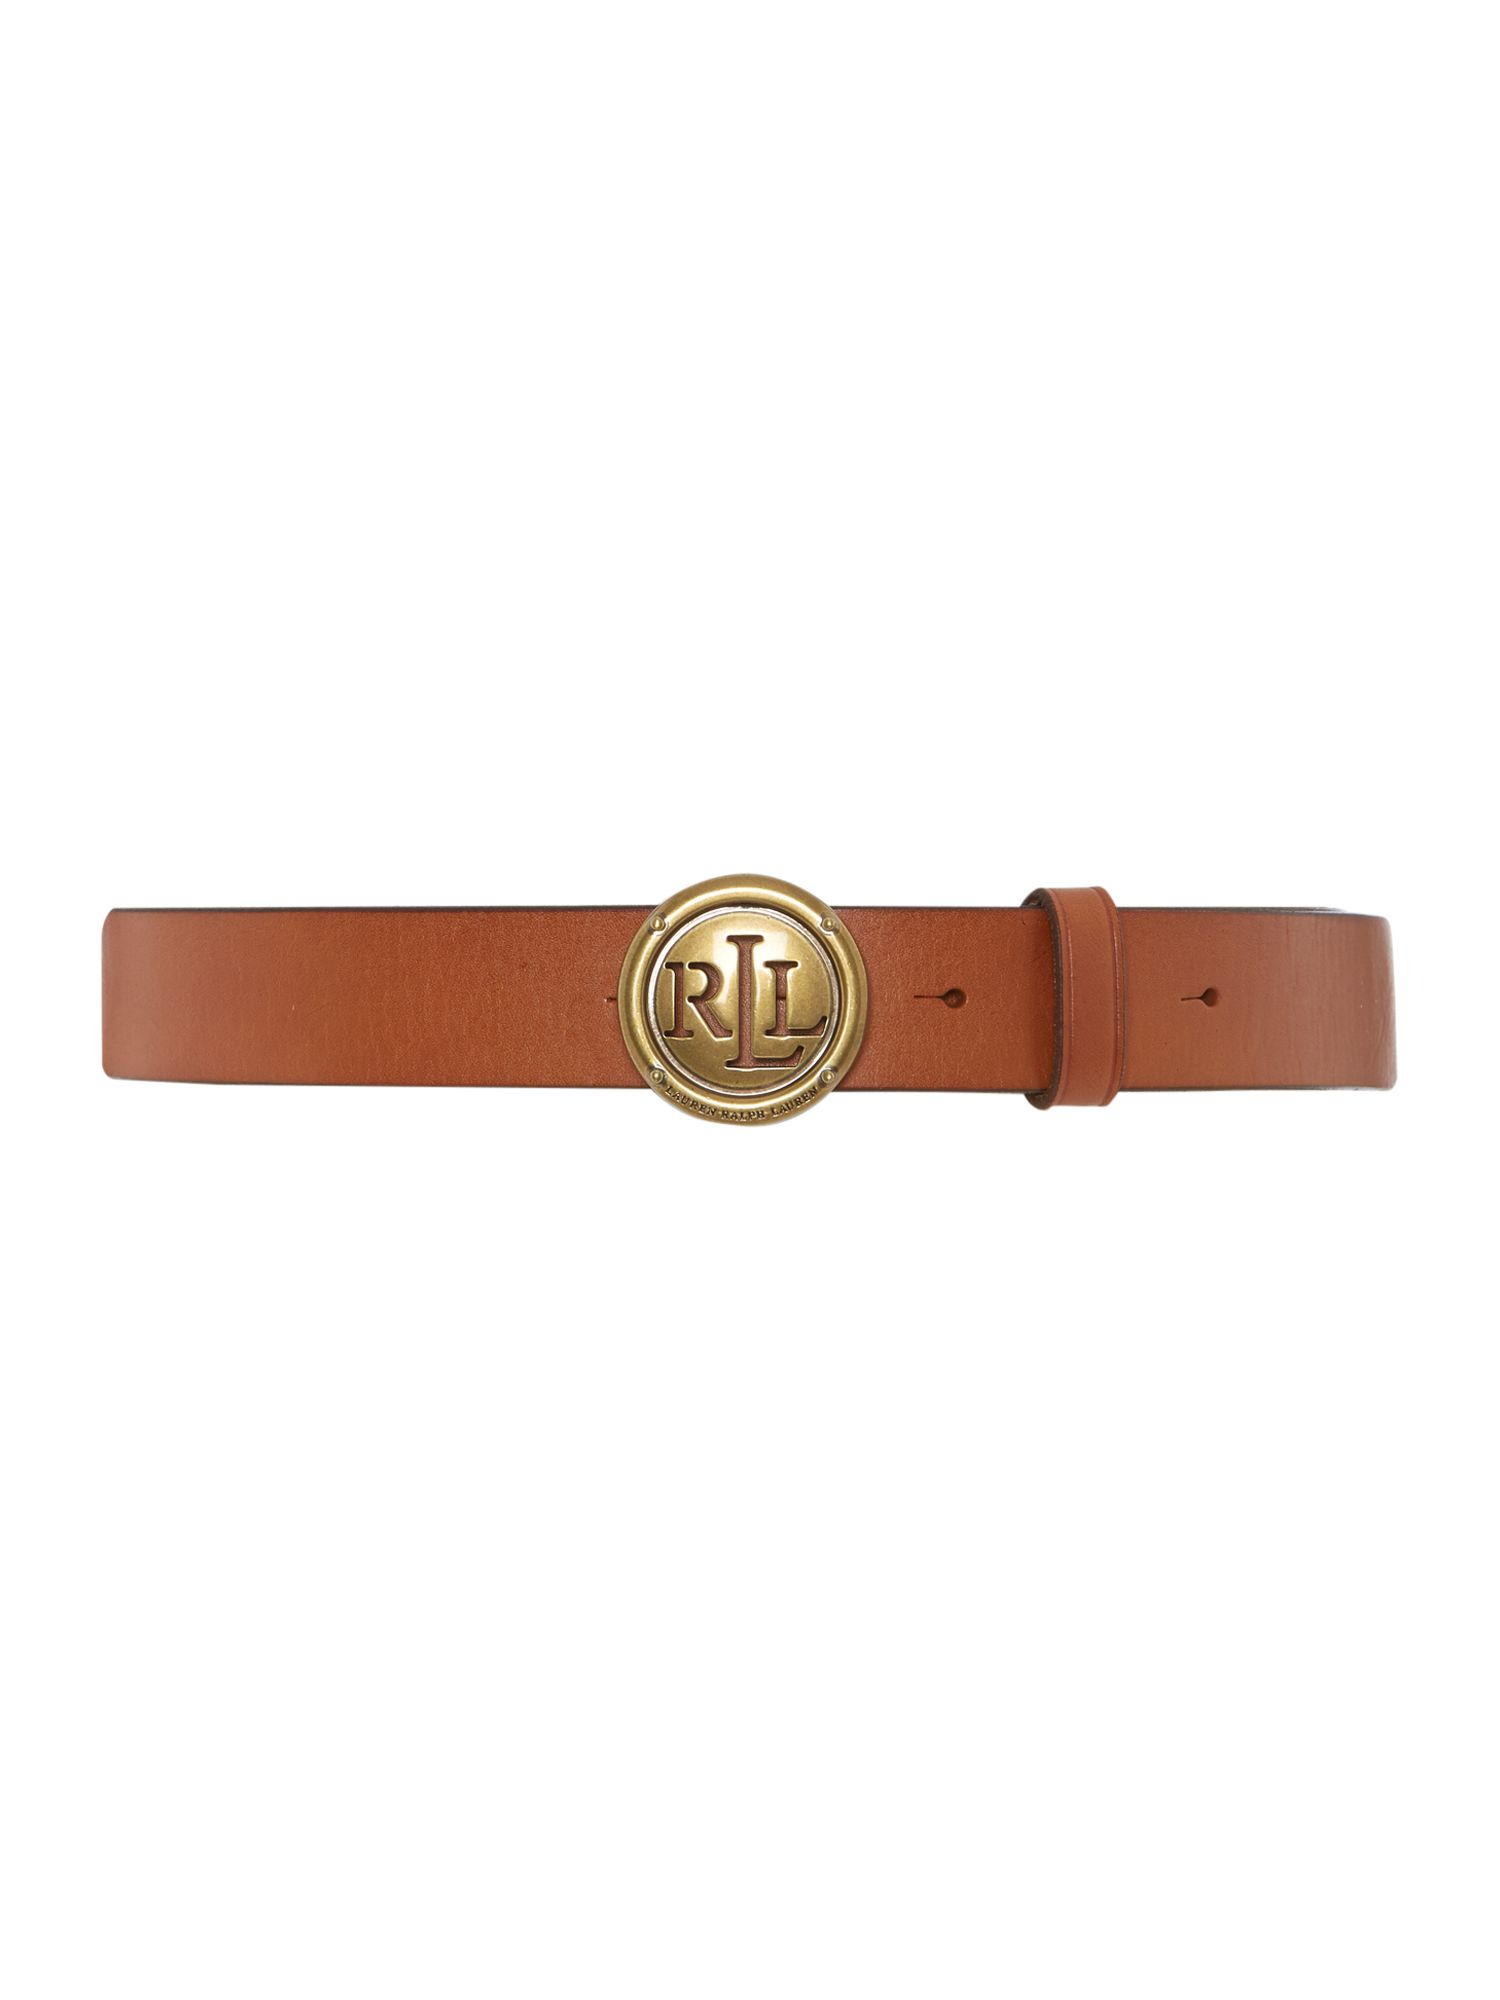 Lauren Classic tan leather belt